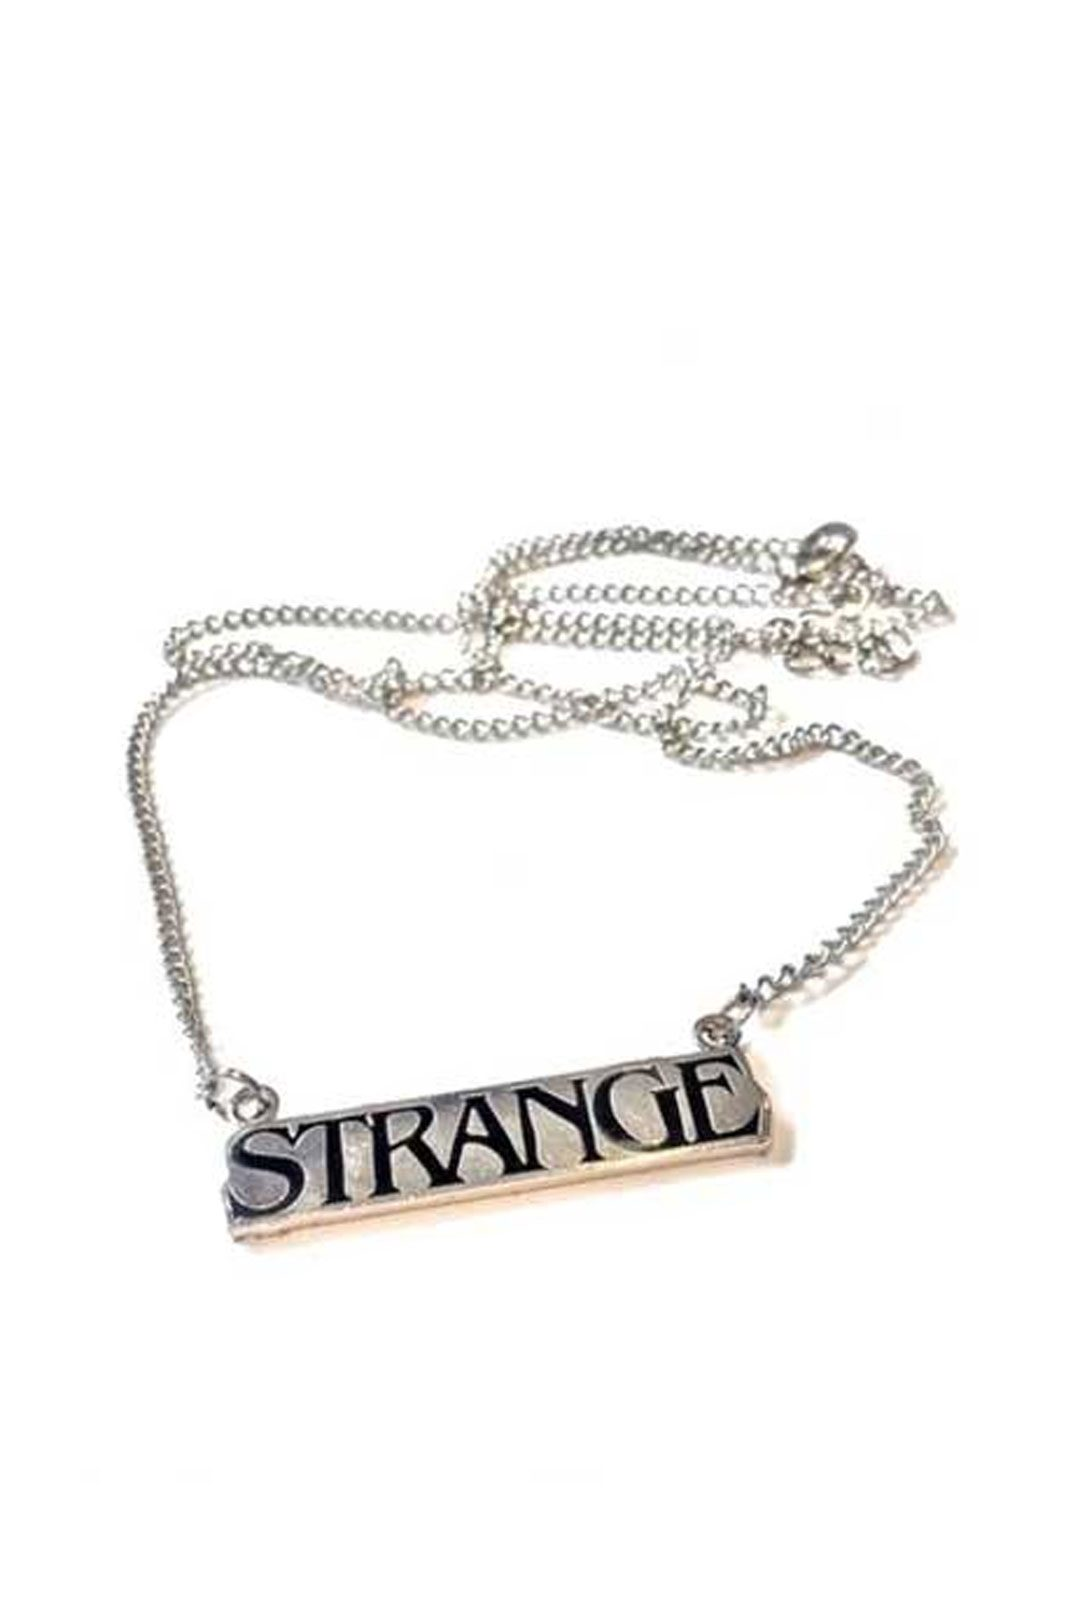 cosmic strange necklace